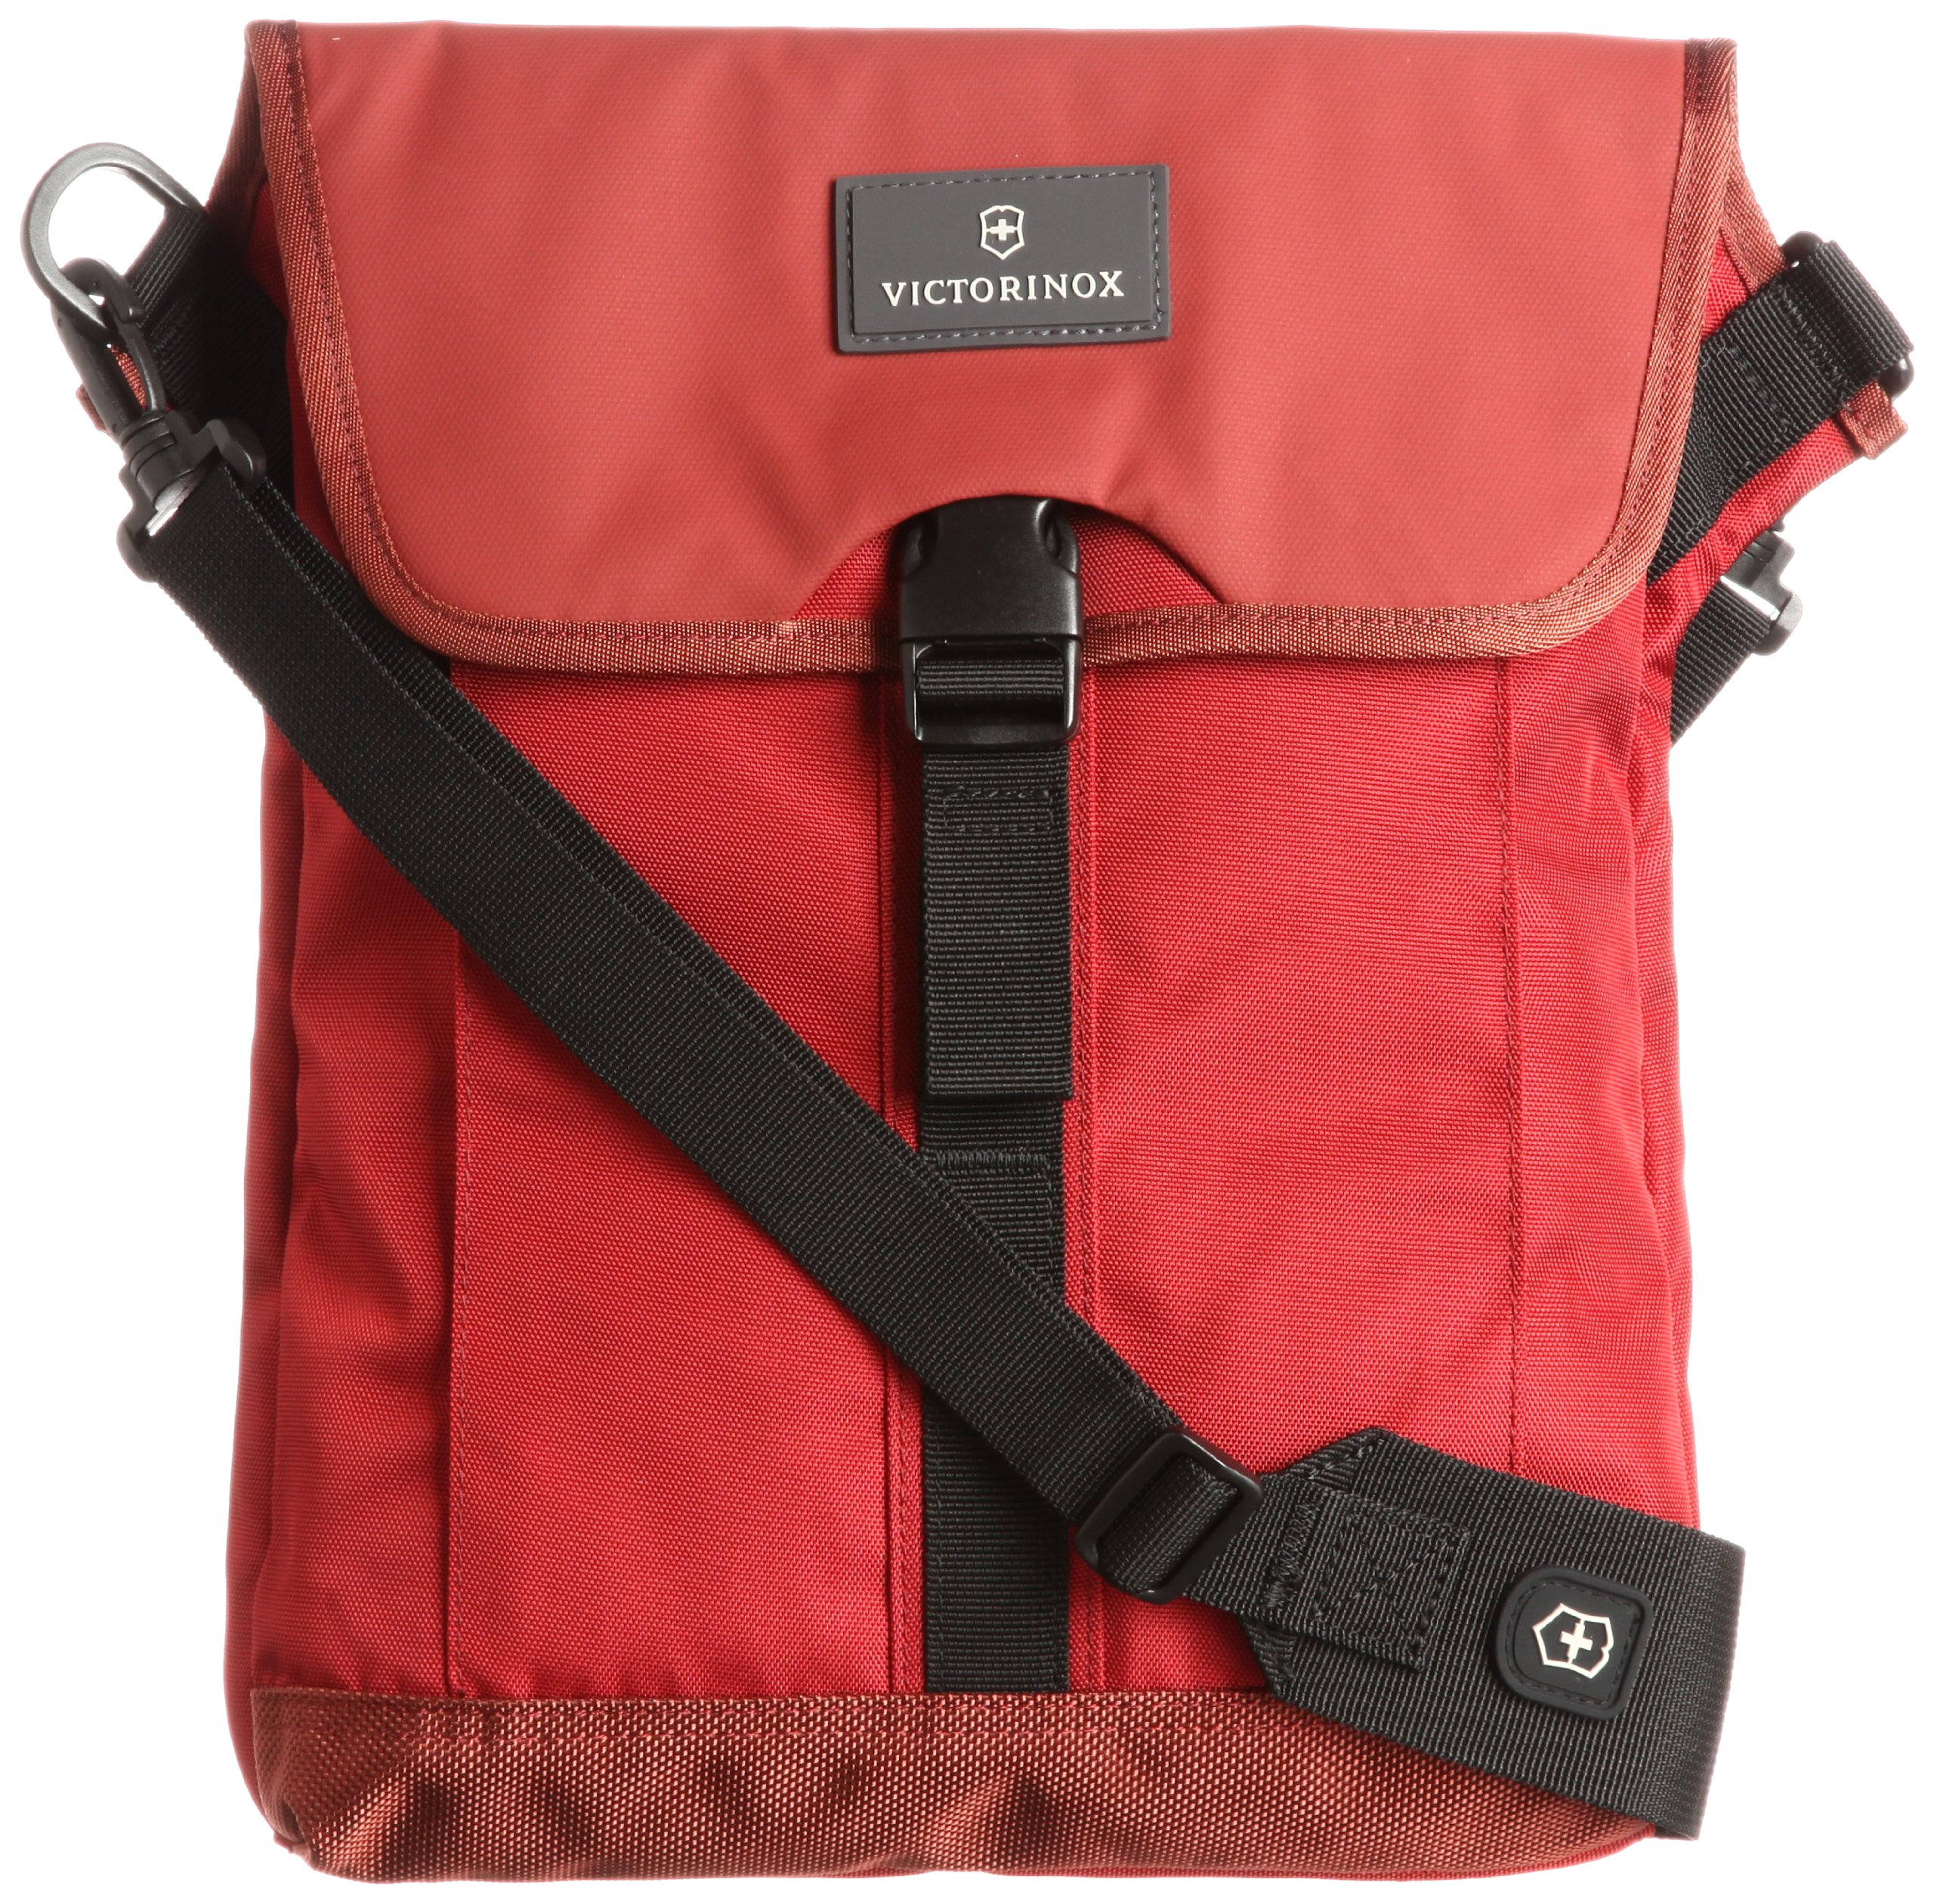 Victorinox Luggage Almont 3.0 Flapover Digital Bag, Red, One Size